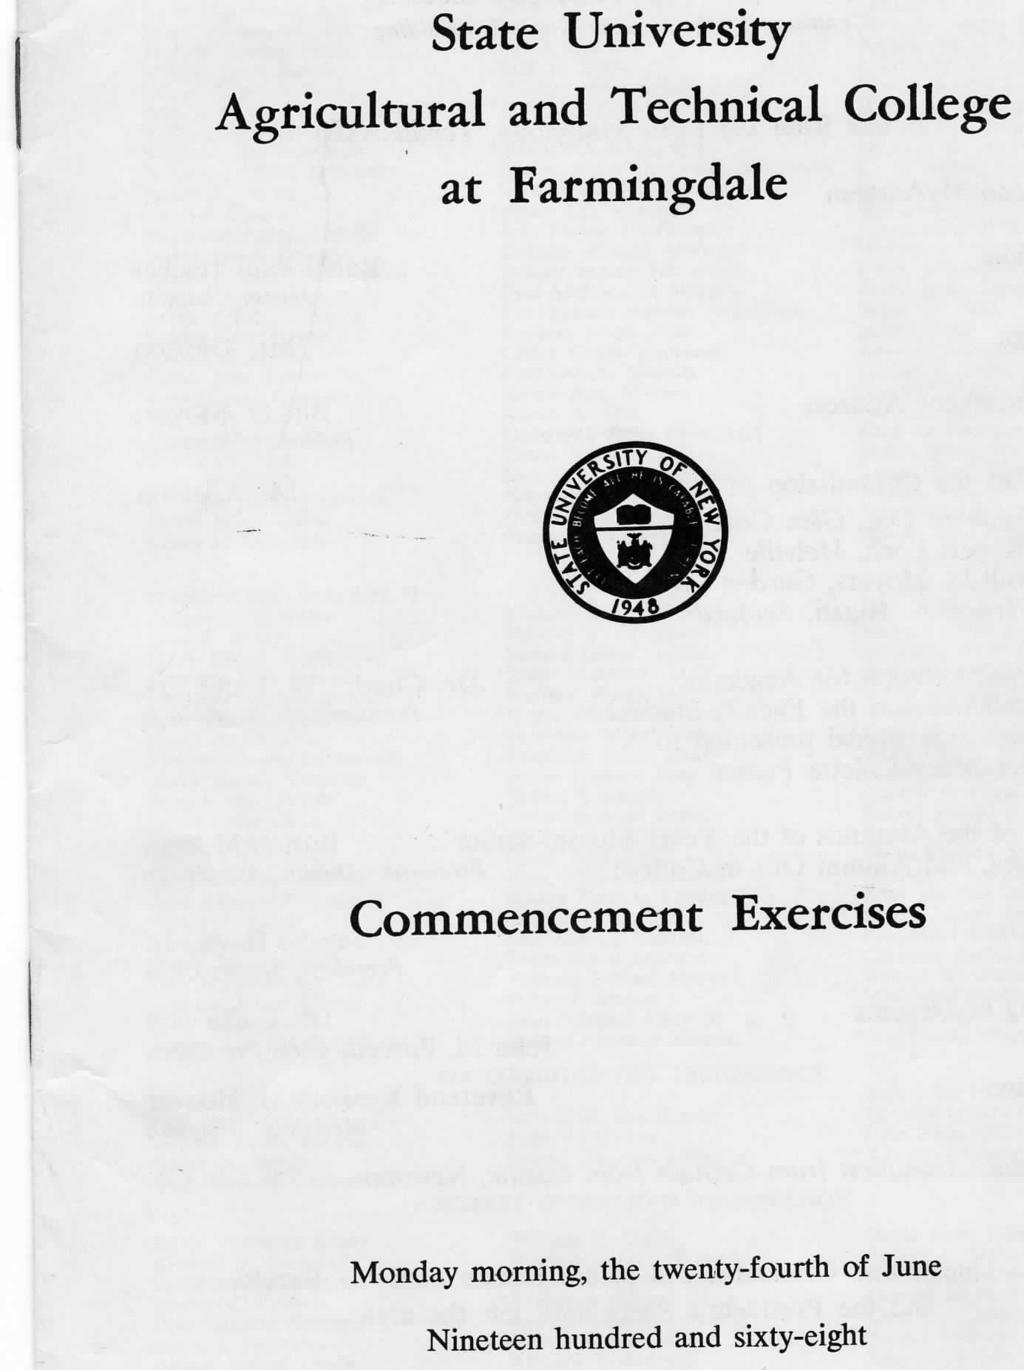 State University Agricultural and Technical College at Farmingdale Commencement